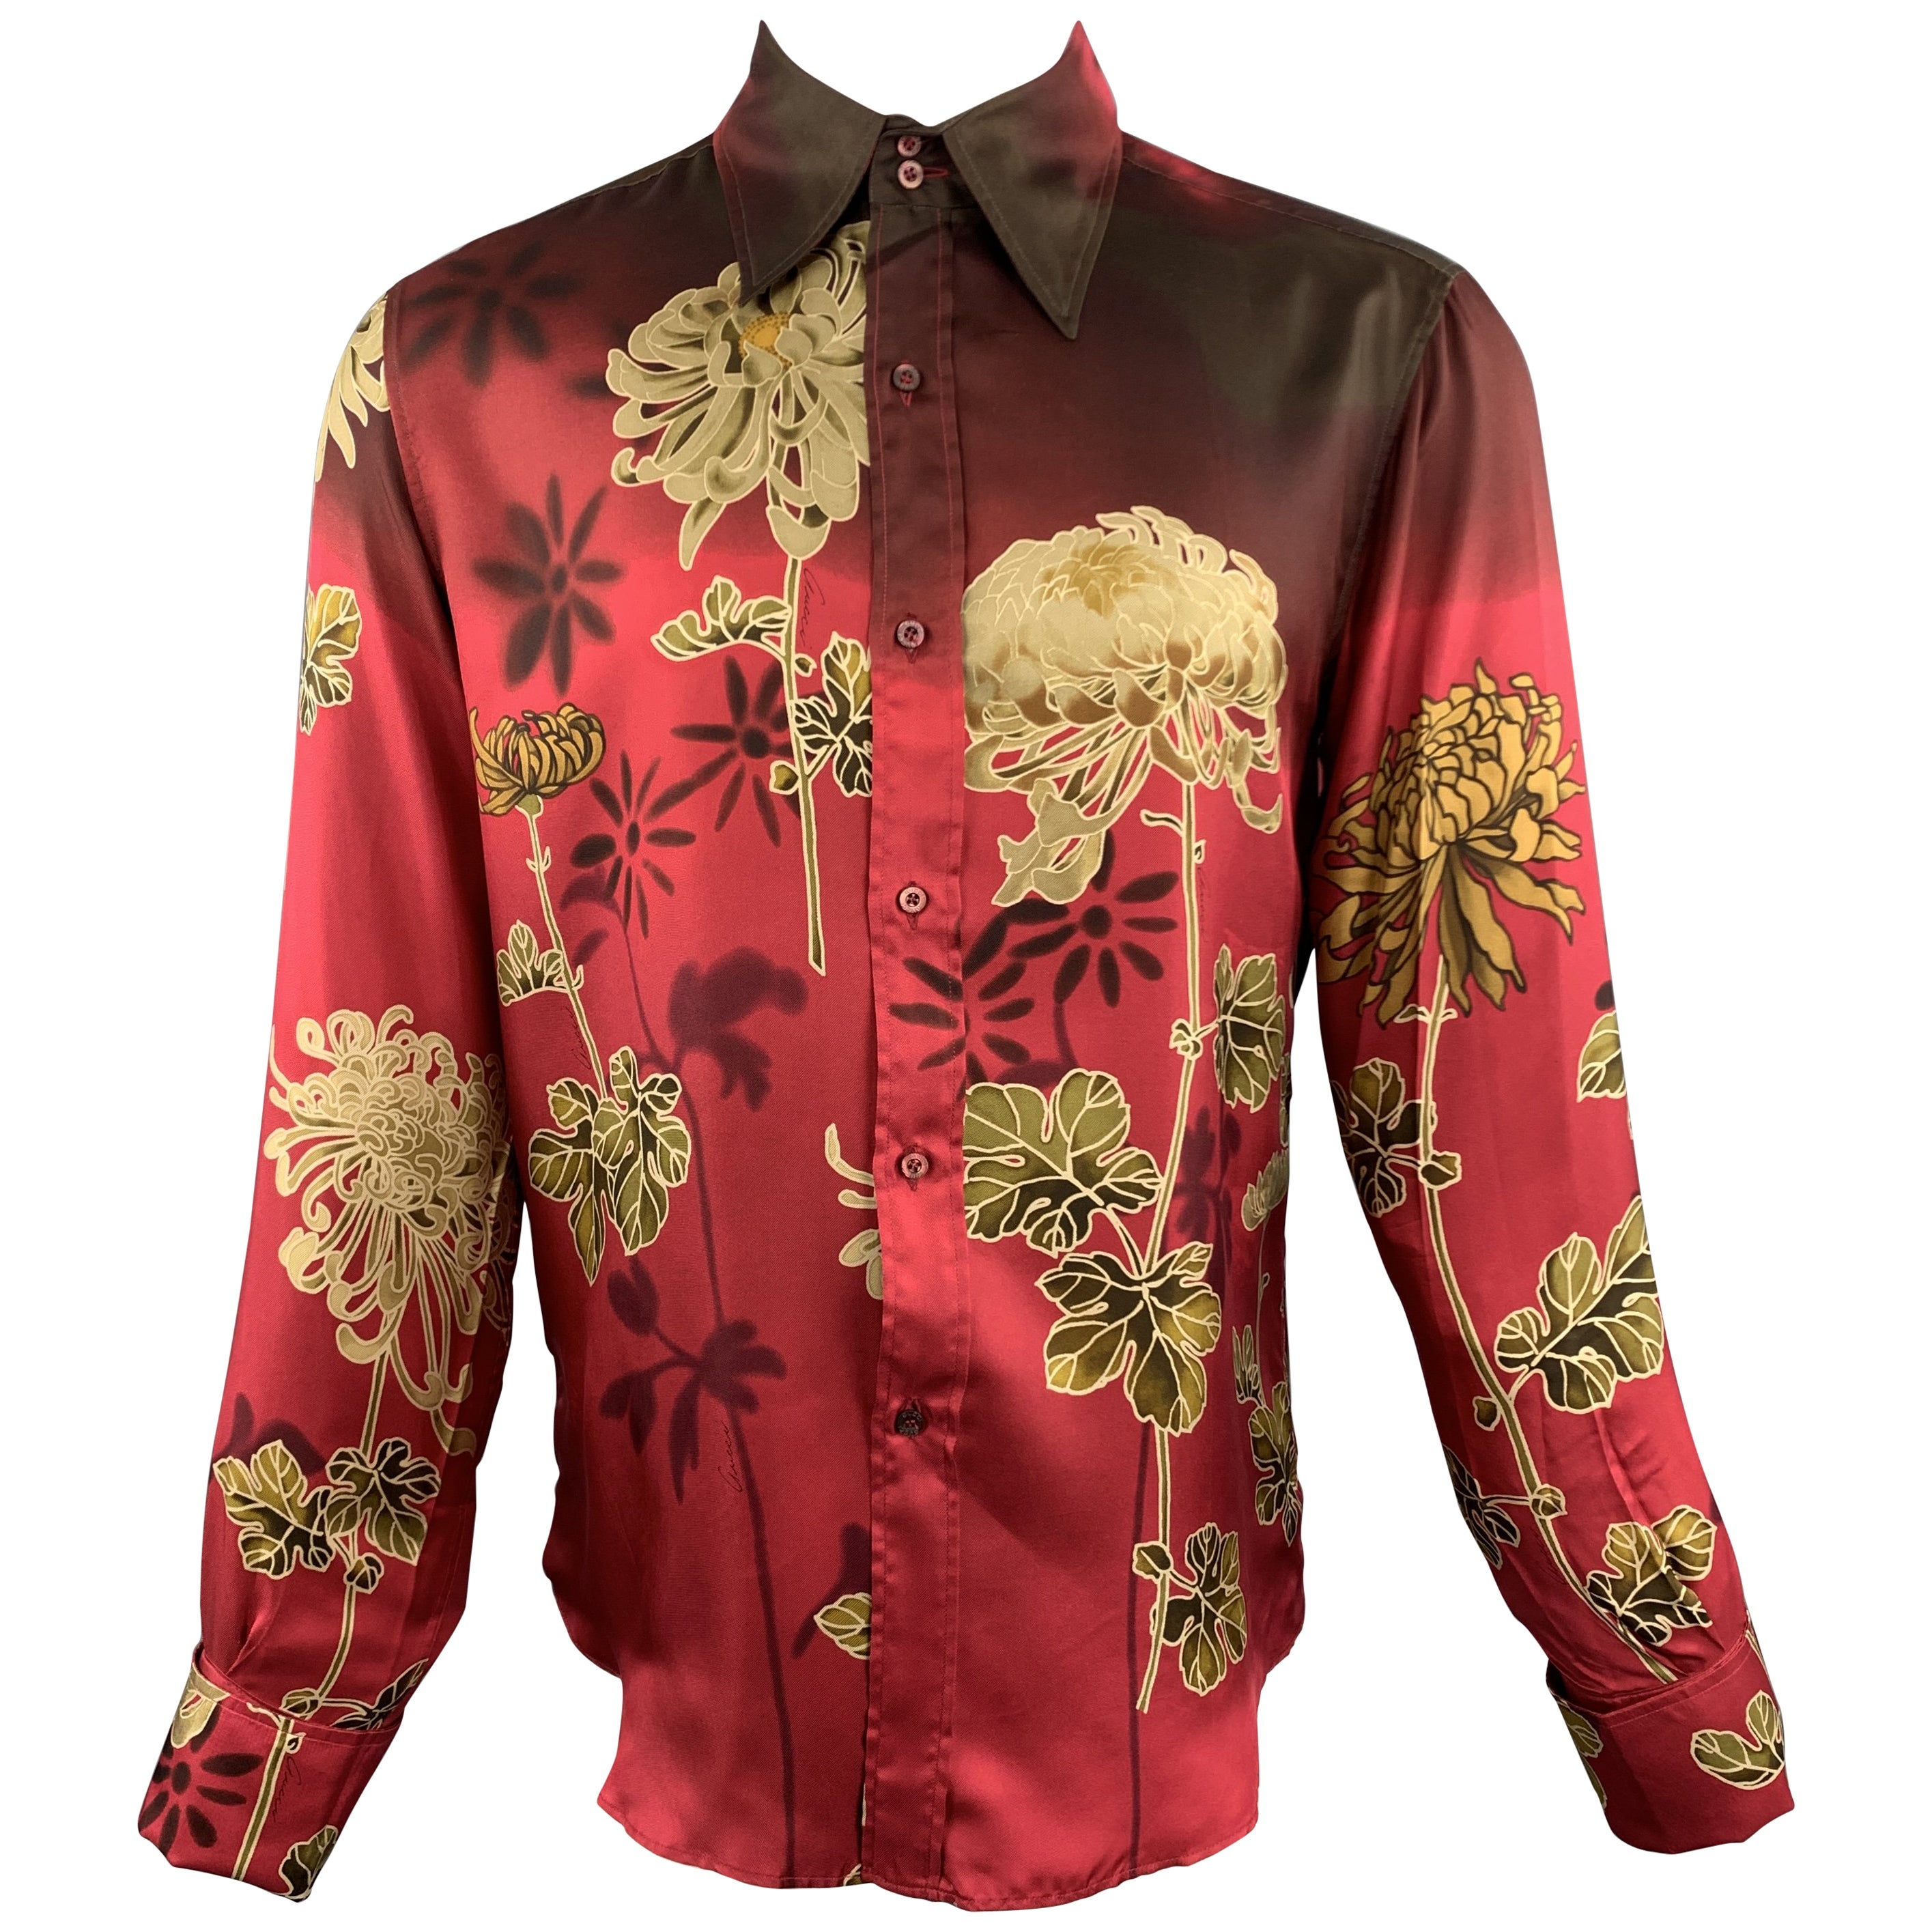 3636ff8f7ce4 GUCCI by TOM FORD M Burgundy Floral Silk French Cuff Long Sleeve Shirt For  Sale at 1stdibs